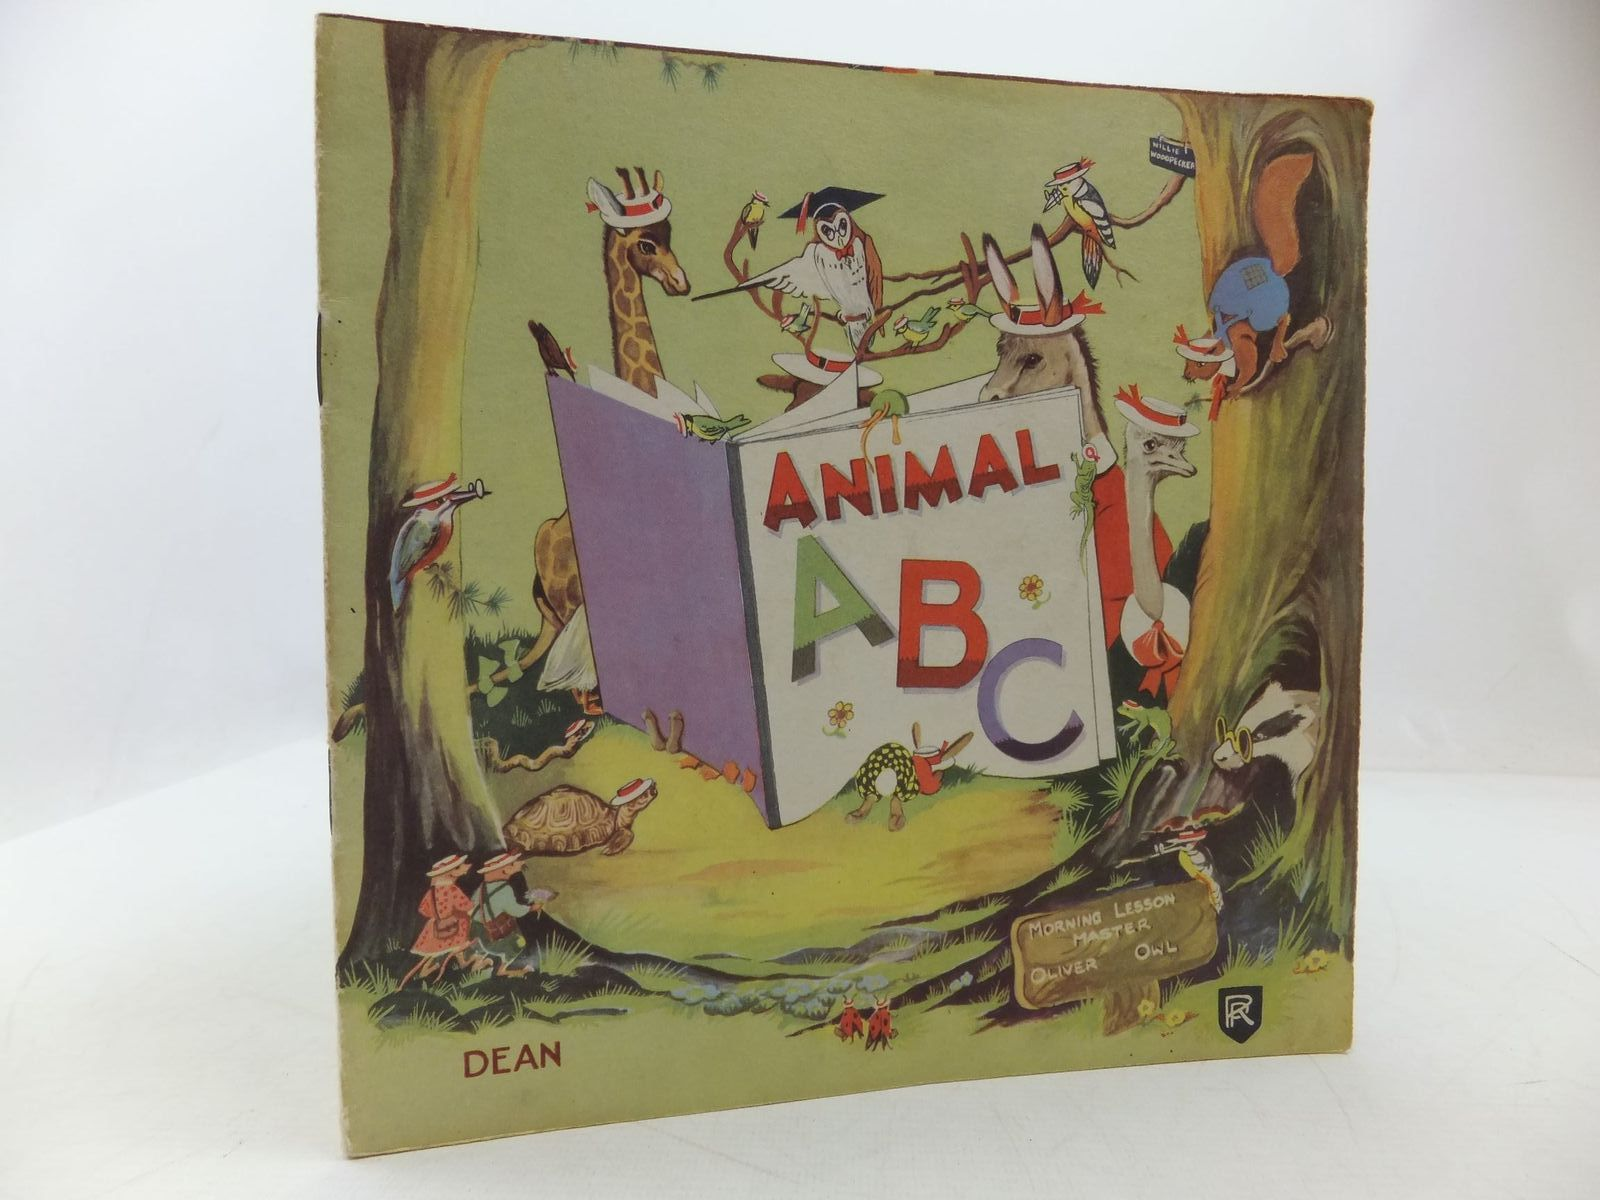 Photo of ANIMAL ABC published by Dean (STOCK CODE: 1108902)  for sale by Stella & Rose's Books